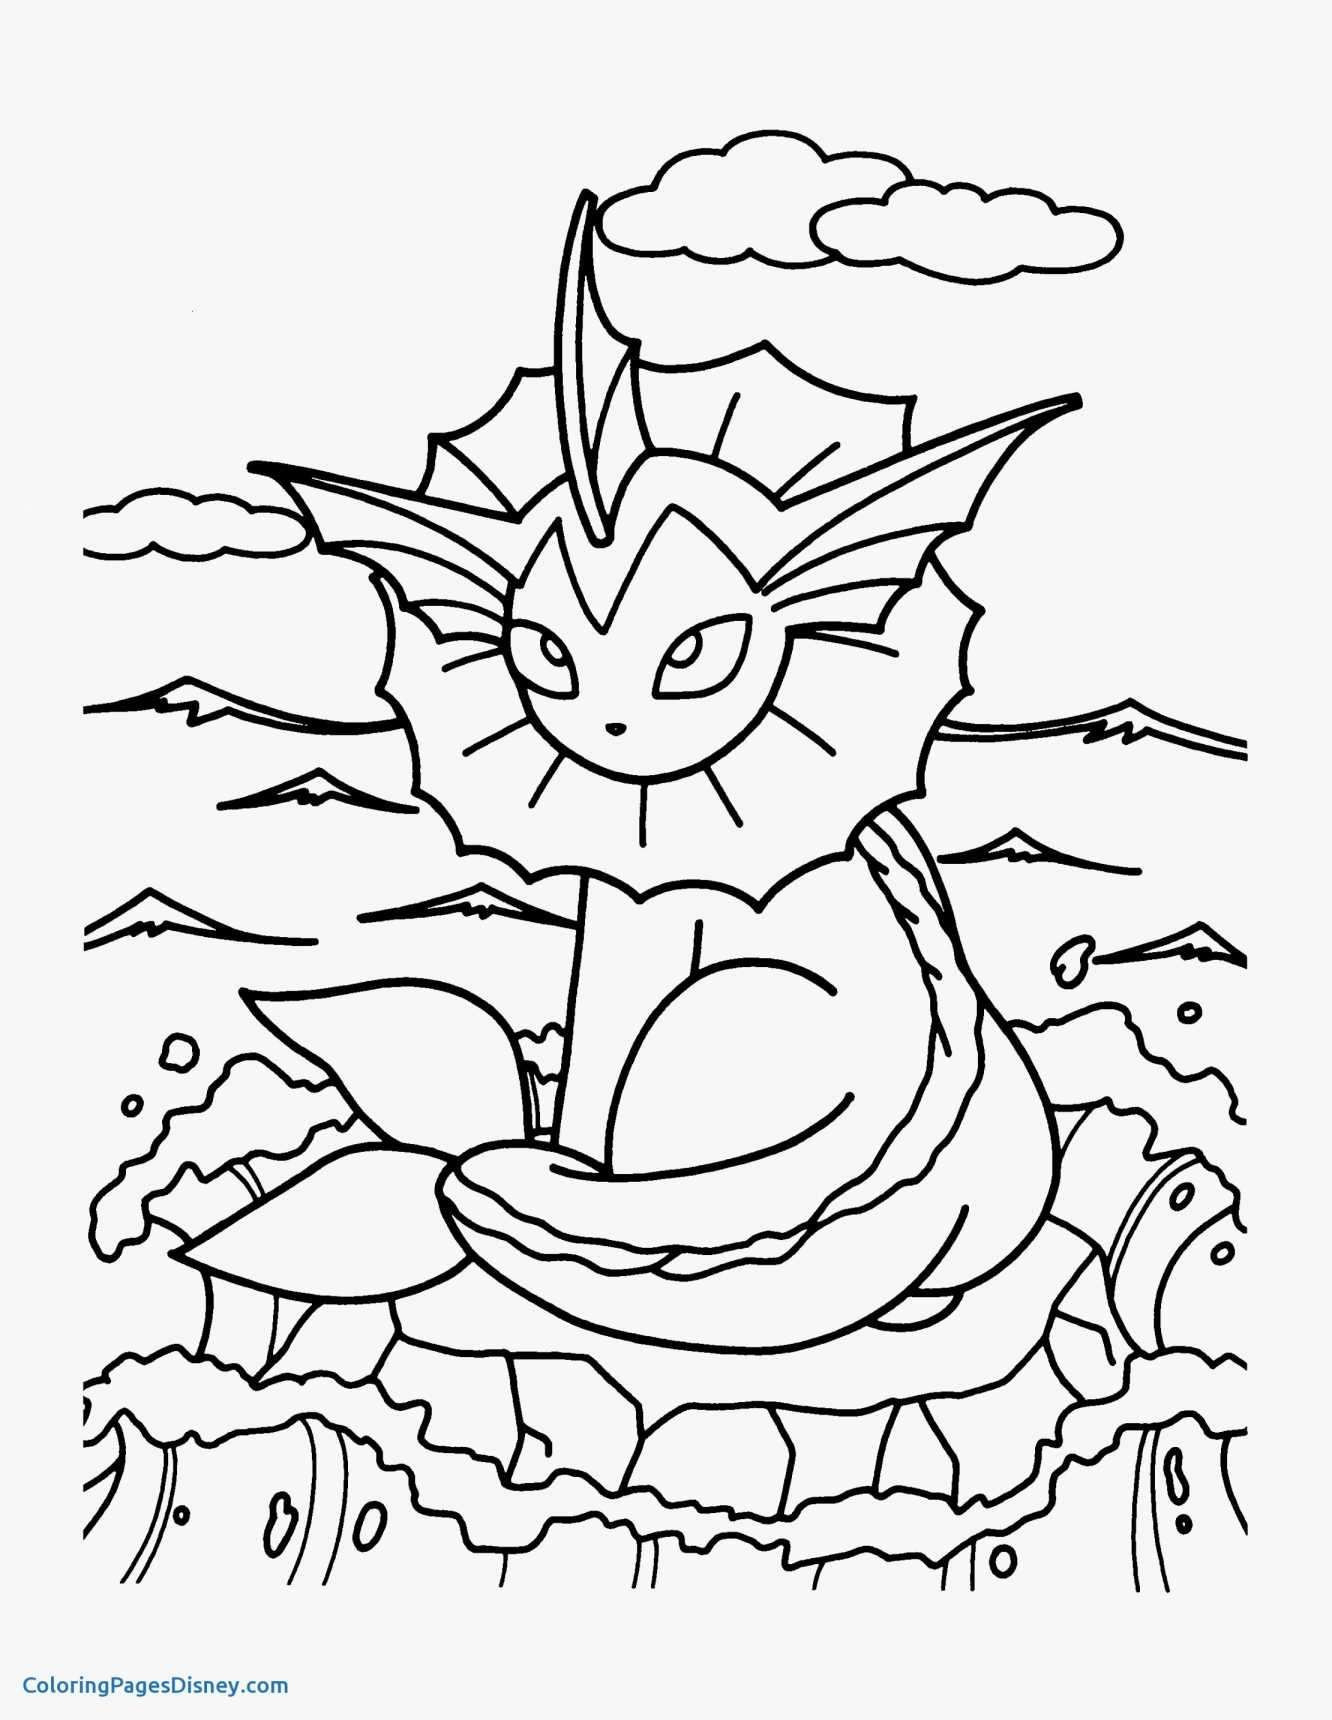 Barbie Printable Coloring Pages Outstanding Barbie Printable Coloring Pages 42 Batman For Kids Free